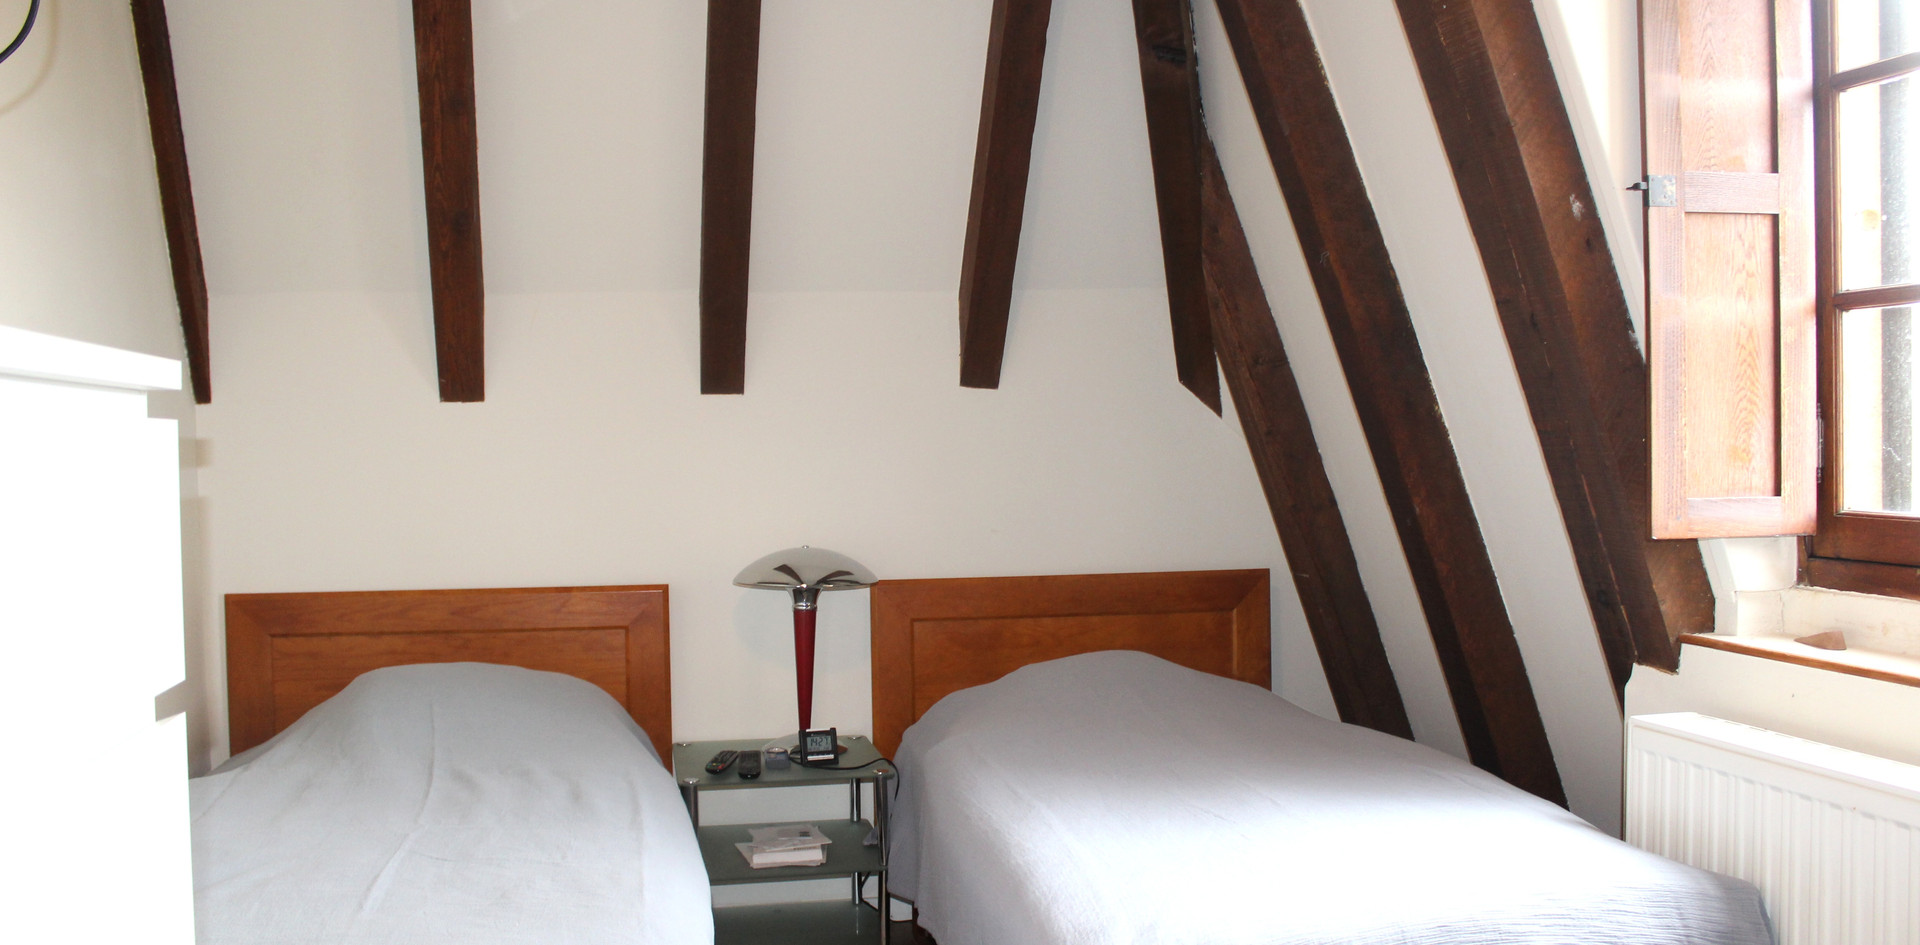 King size bed in master overlooking the Dordogne River